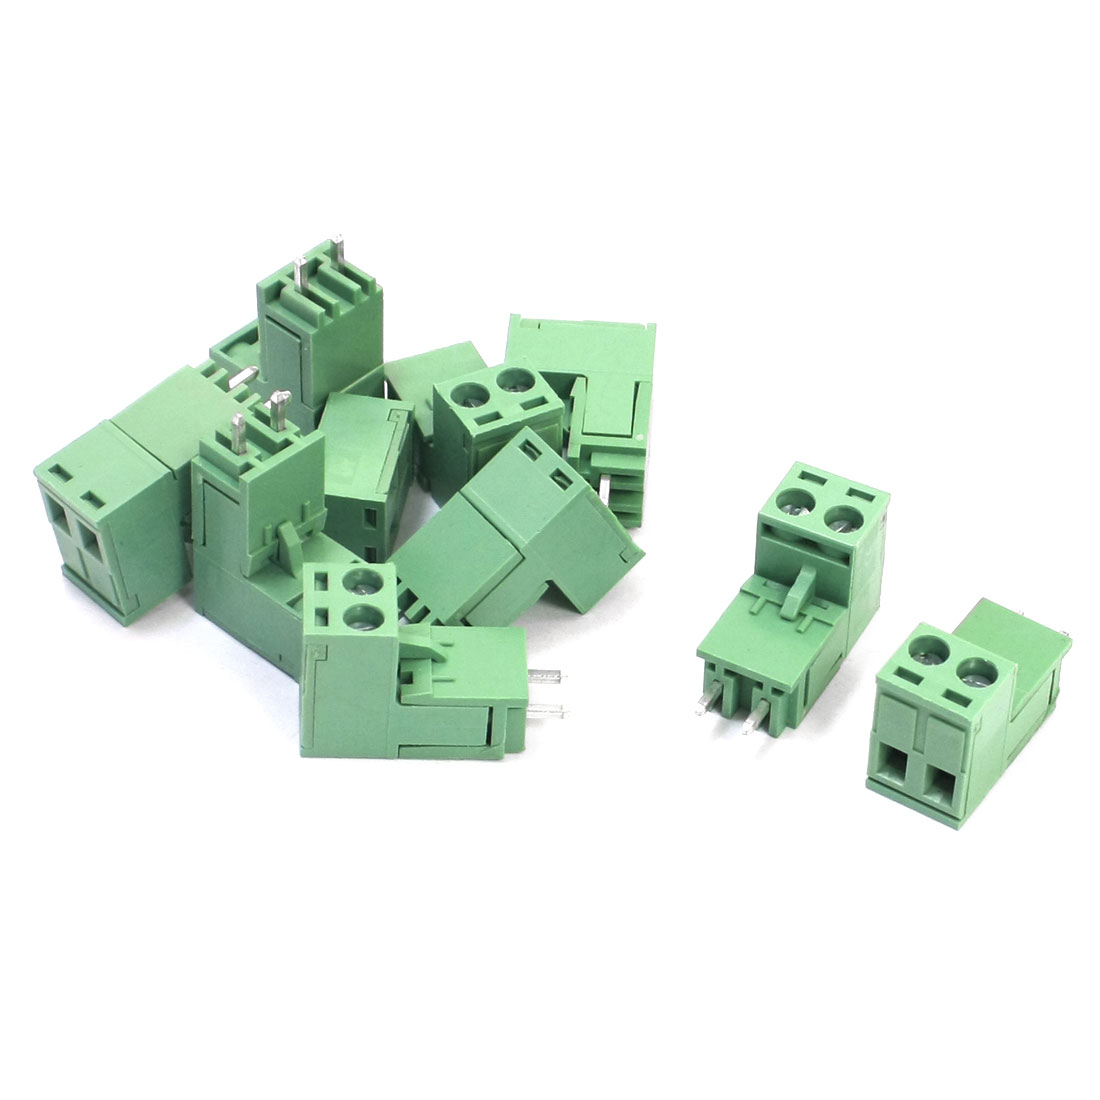 10Pcs 5.08mm Pitch Right Angle 2-Position Pluggable Type PCB Mounting Green Plastic Screw Terminal Block 300V 15A